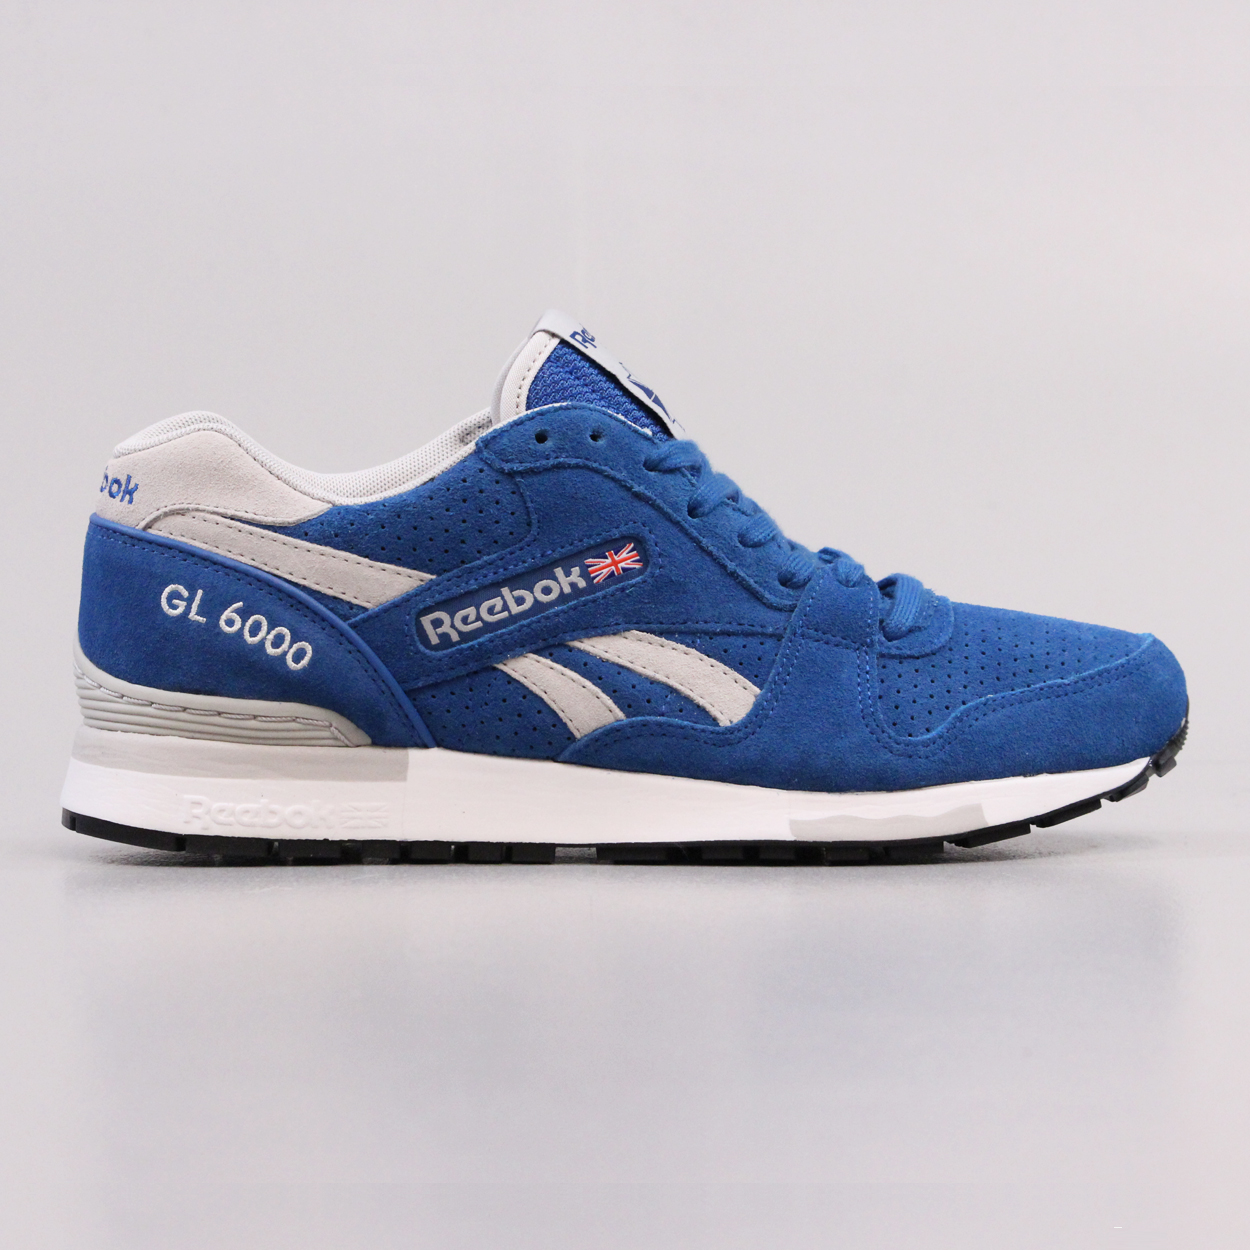 new product 09d2c 99549 Reebok GL 6000 Classic Mens Suede Shoes Persian Blue Grey £39.00